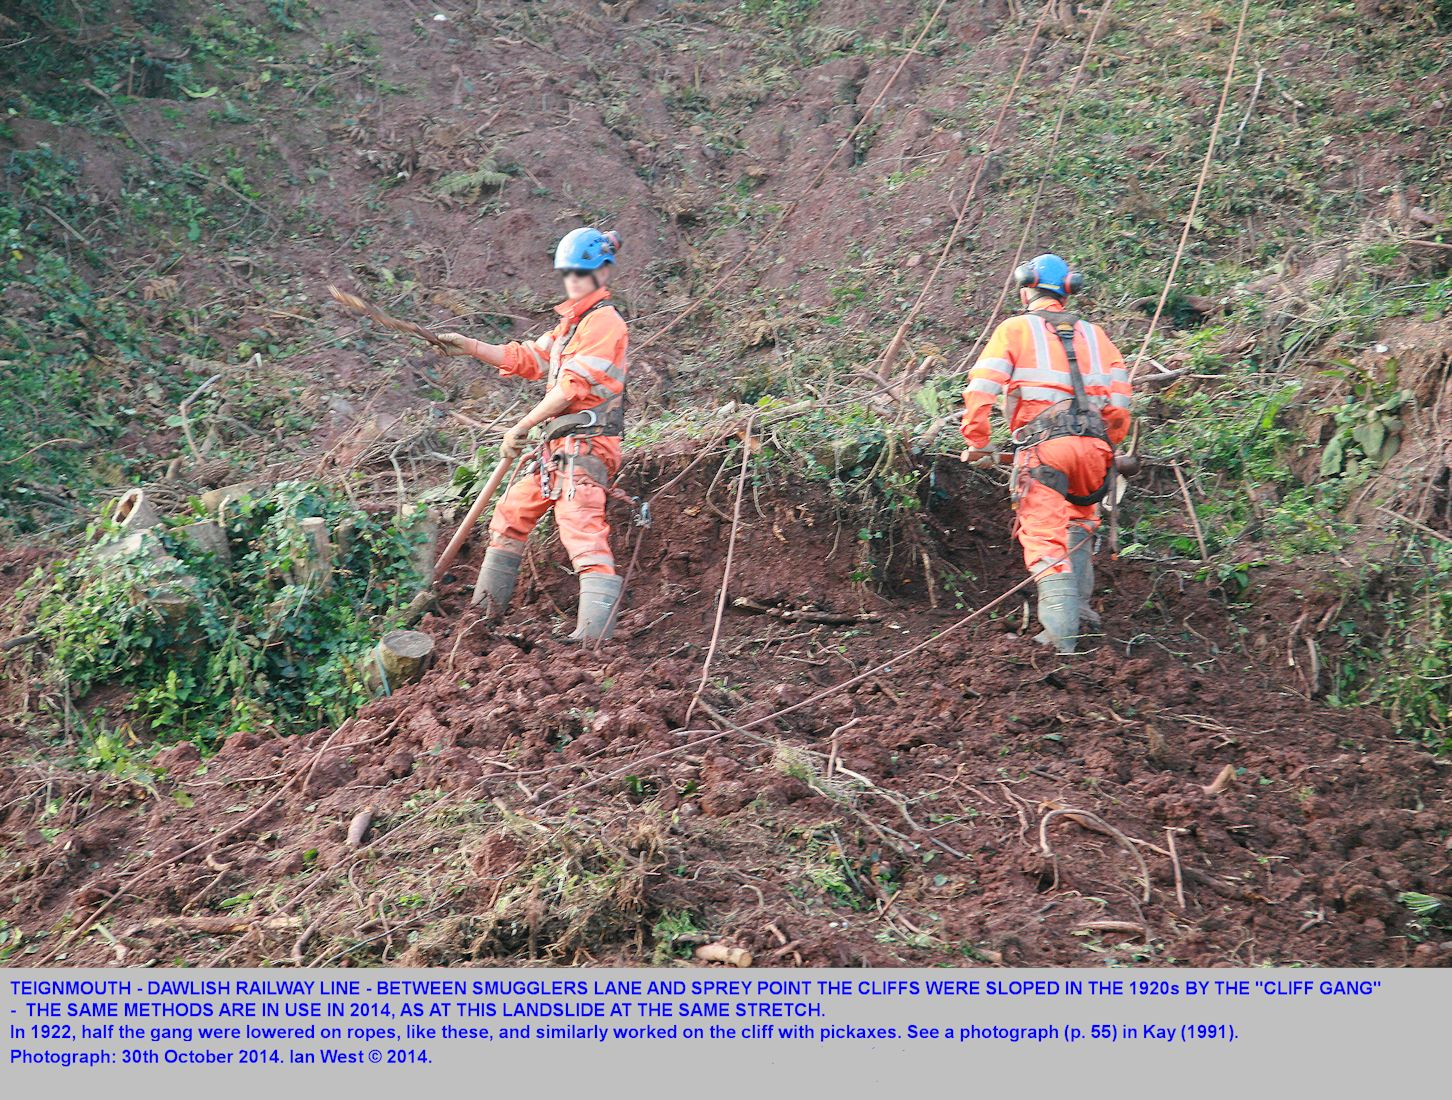 Traditional manual work on a small landslide in the weak cliffs behind the railway line between Sprey Point and Smugglers Lane, Dawlish, Devon, October 2014